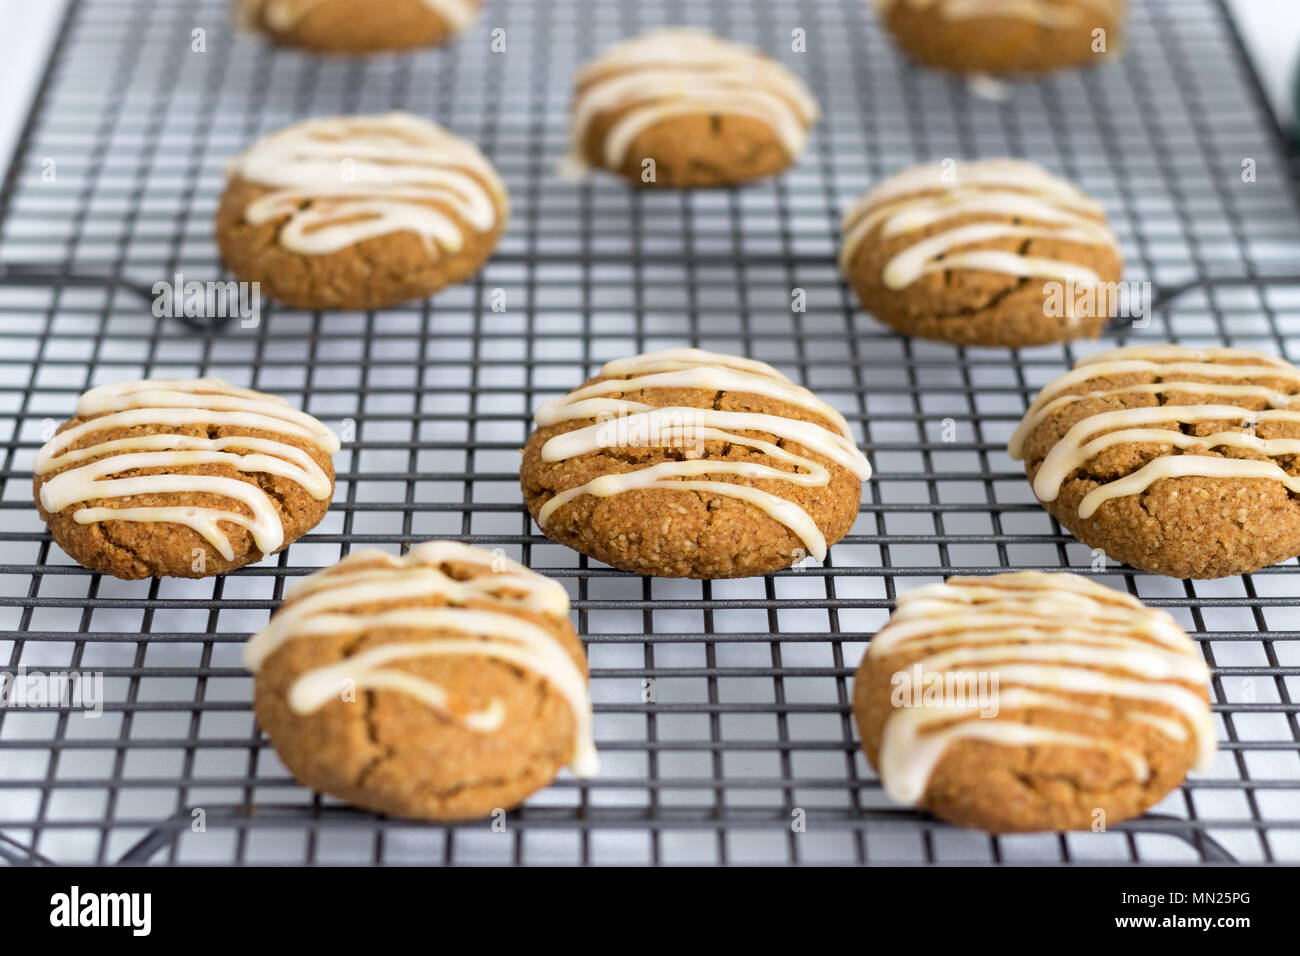 Freshly baked, homemade pumpkin spice cookies, with maple icing. These gluten and dairy free biscuits are displayed on a wire cooling. - Stock Image